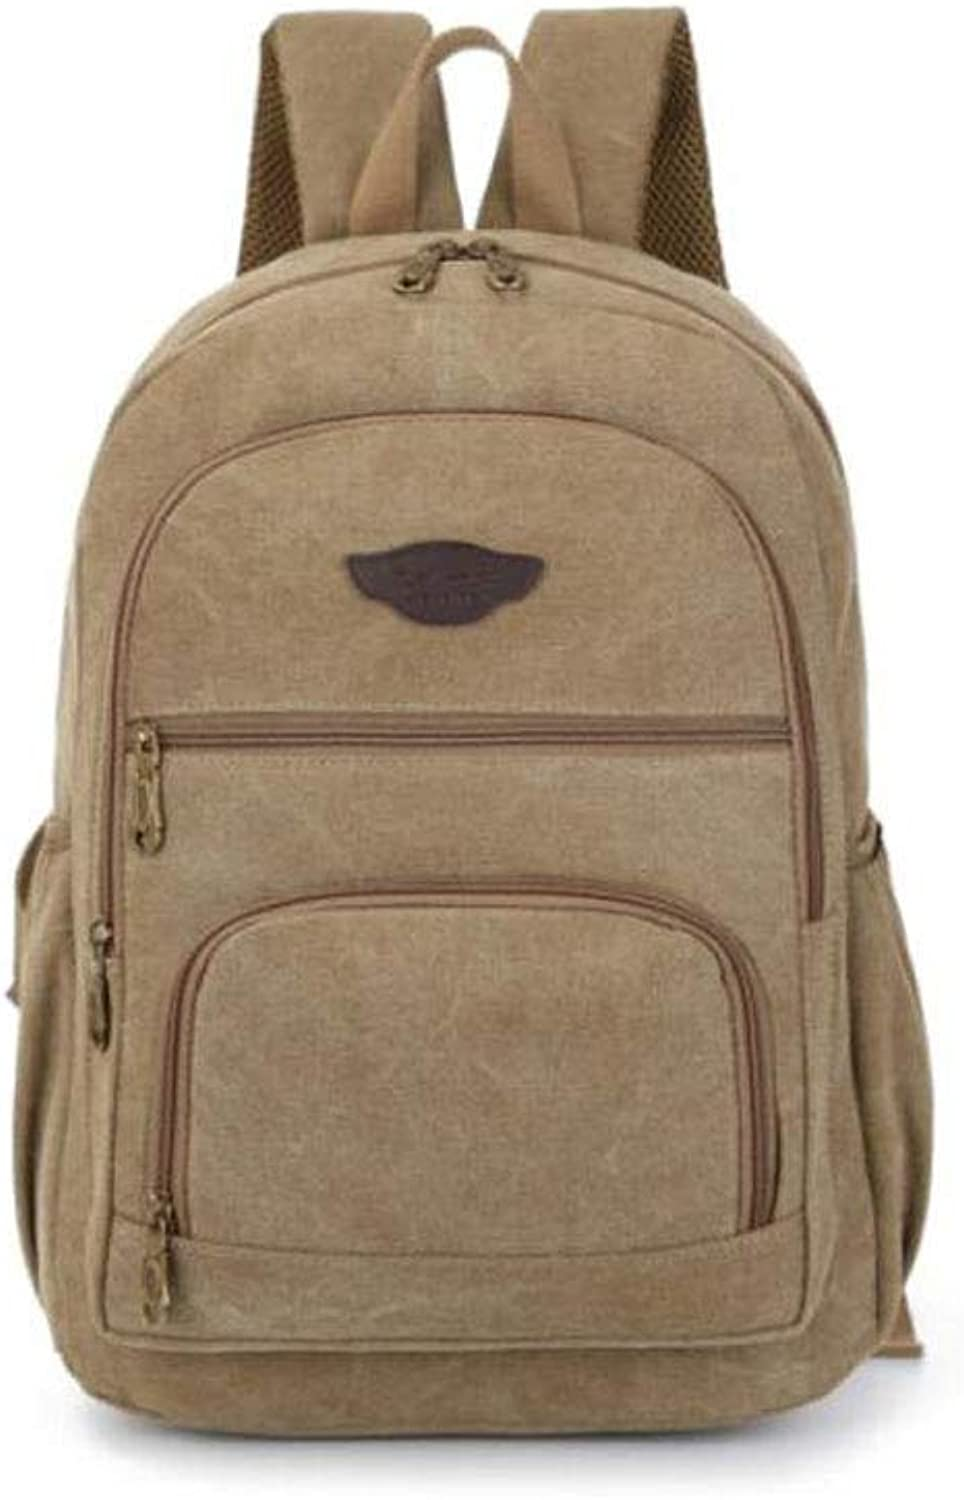 HENG LargeCapacity Sports and Leisure Canvas Backpack, Brown for Hiking, Traveling & Camping (color   Khaki)